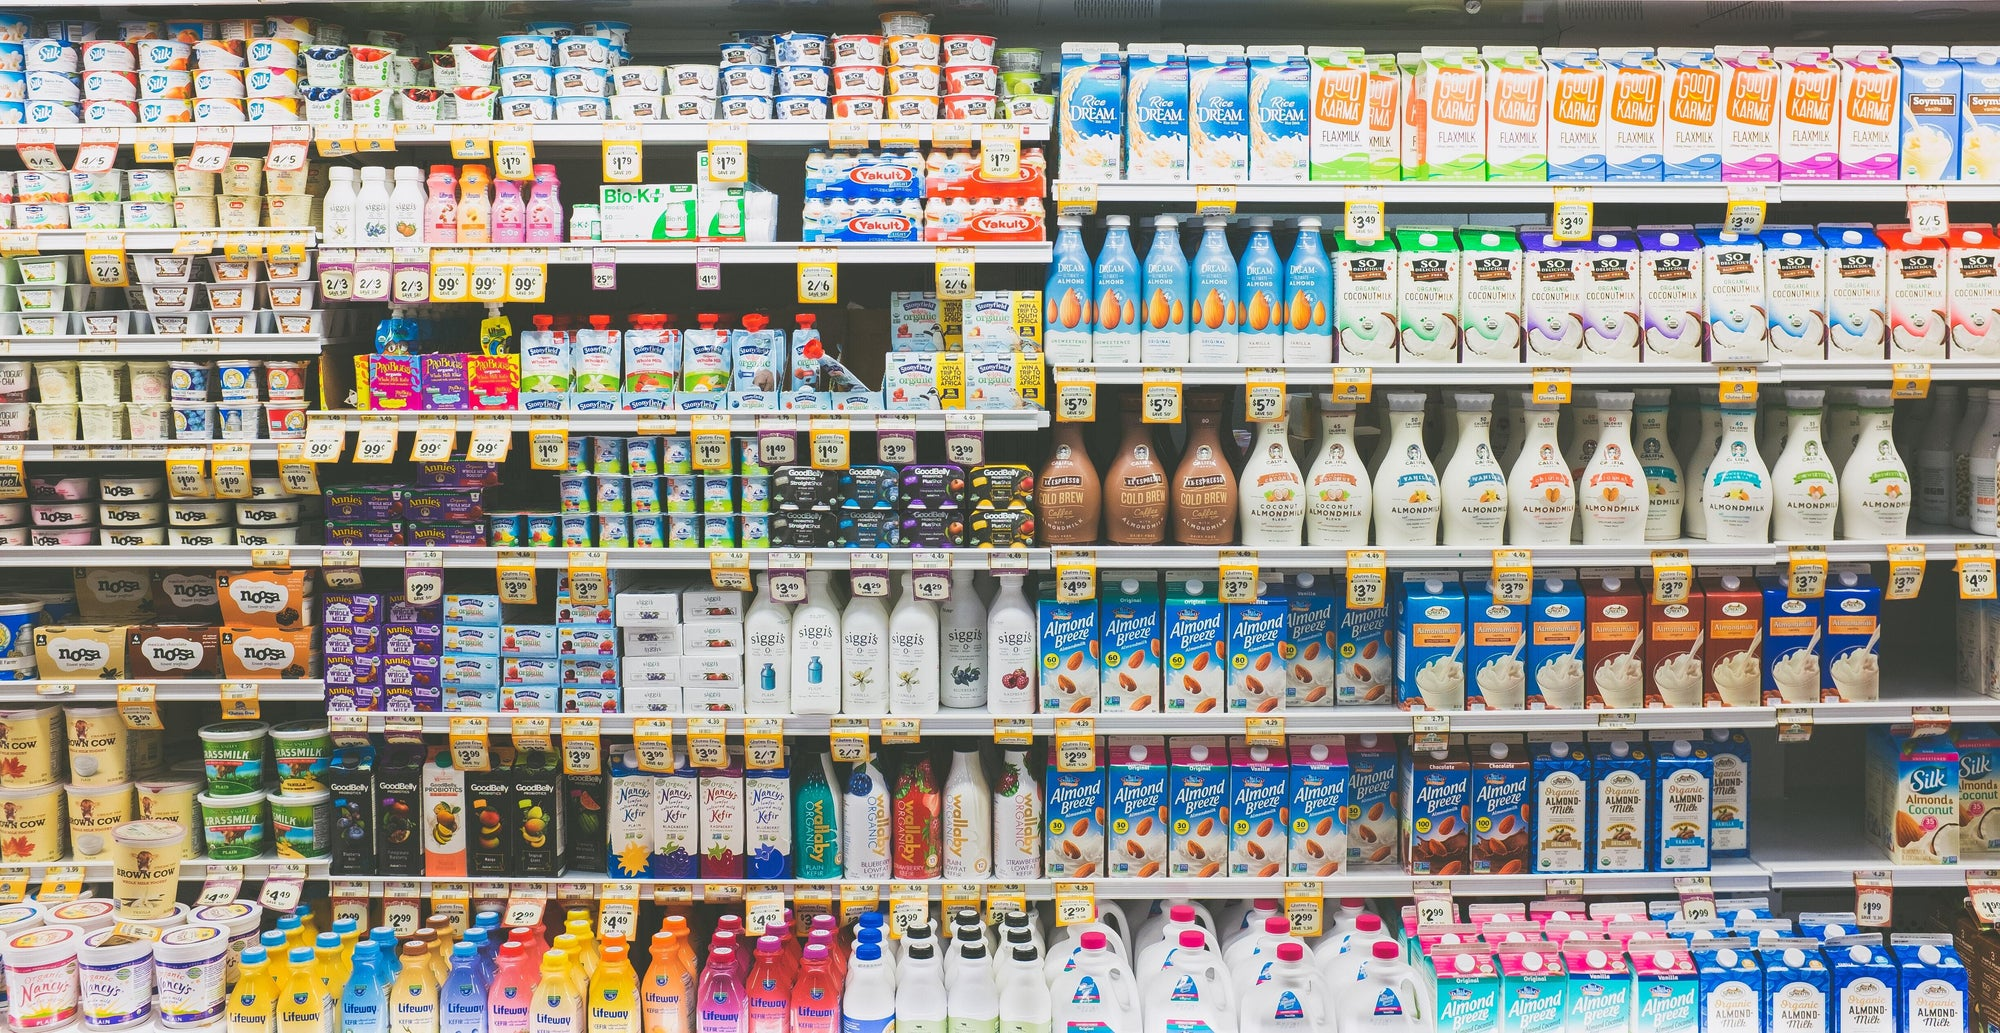 5 plant based milks rising in popularity